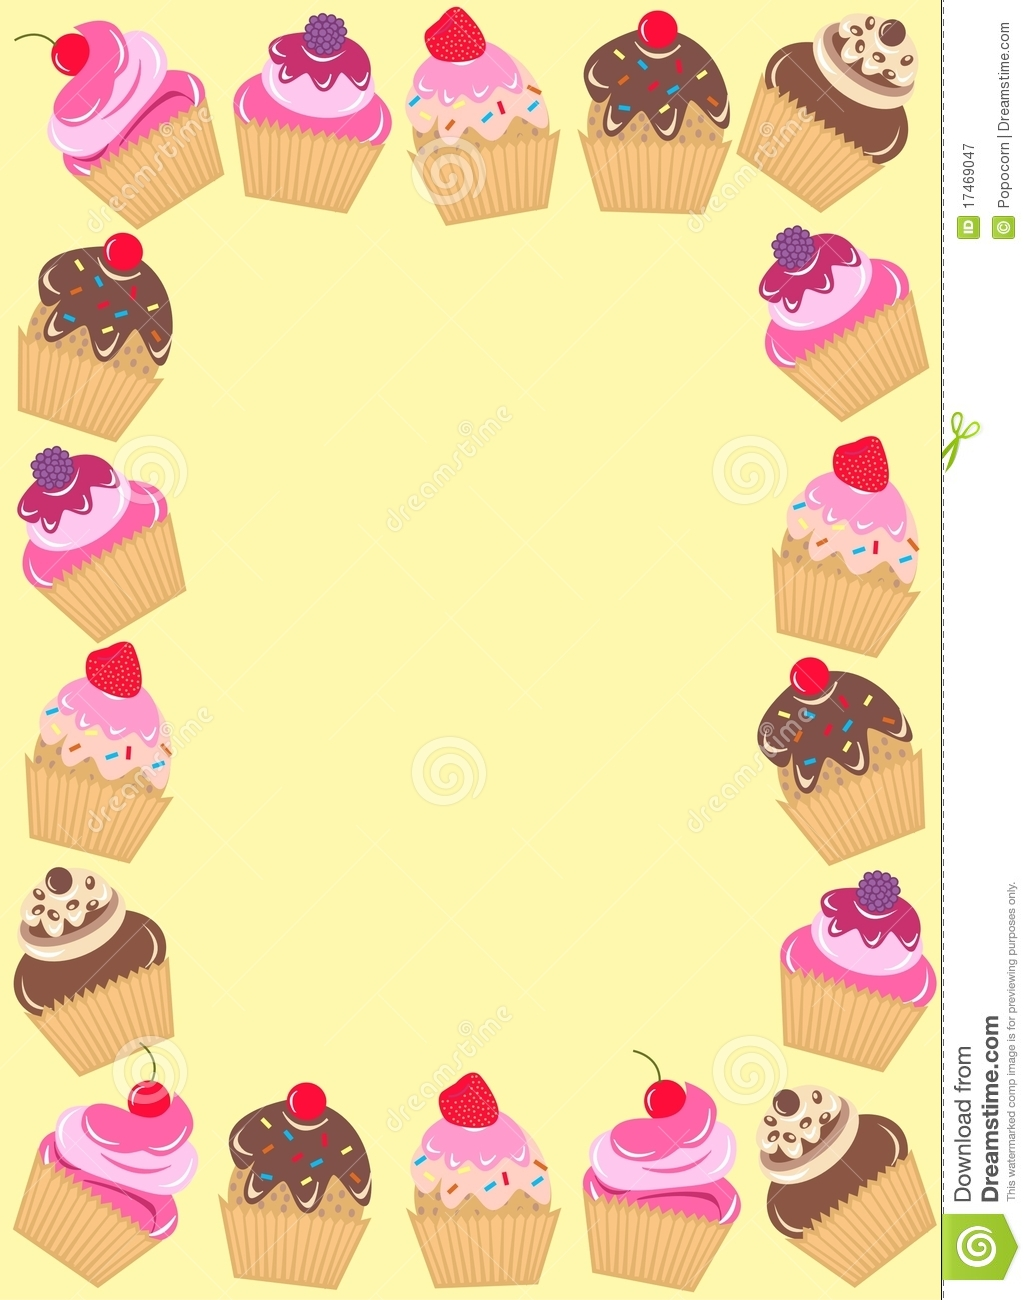 Frame of cupcakes royalty free stock photography image 17469047